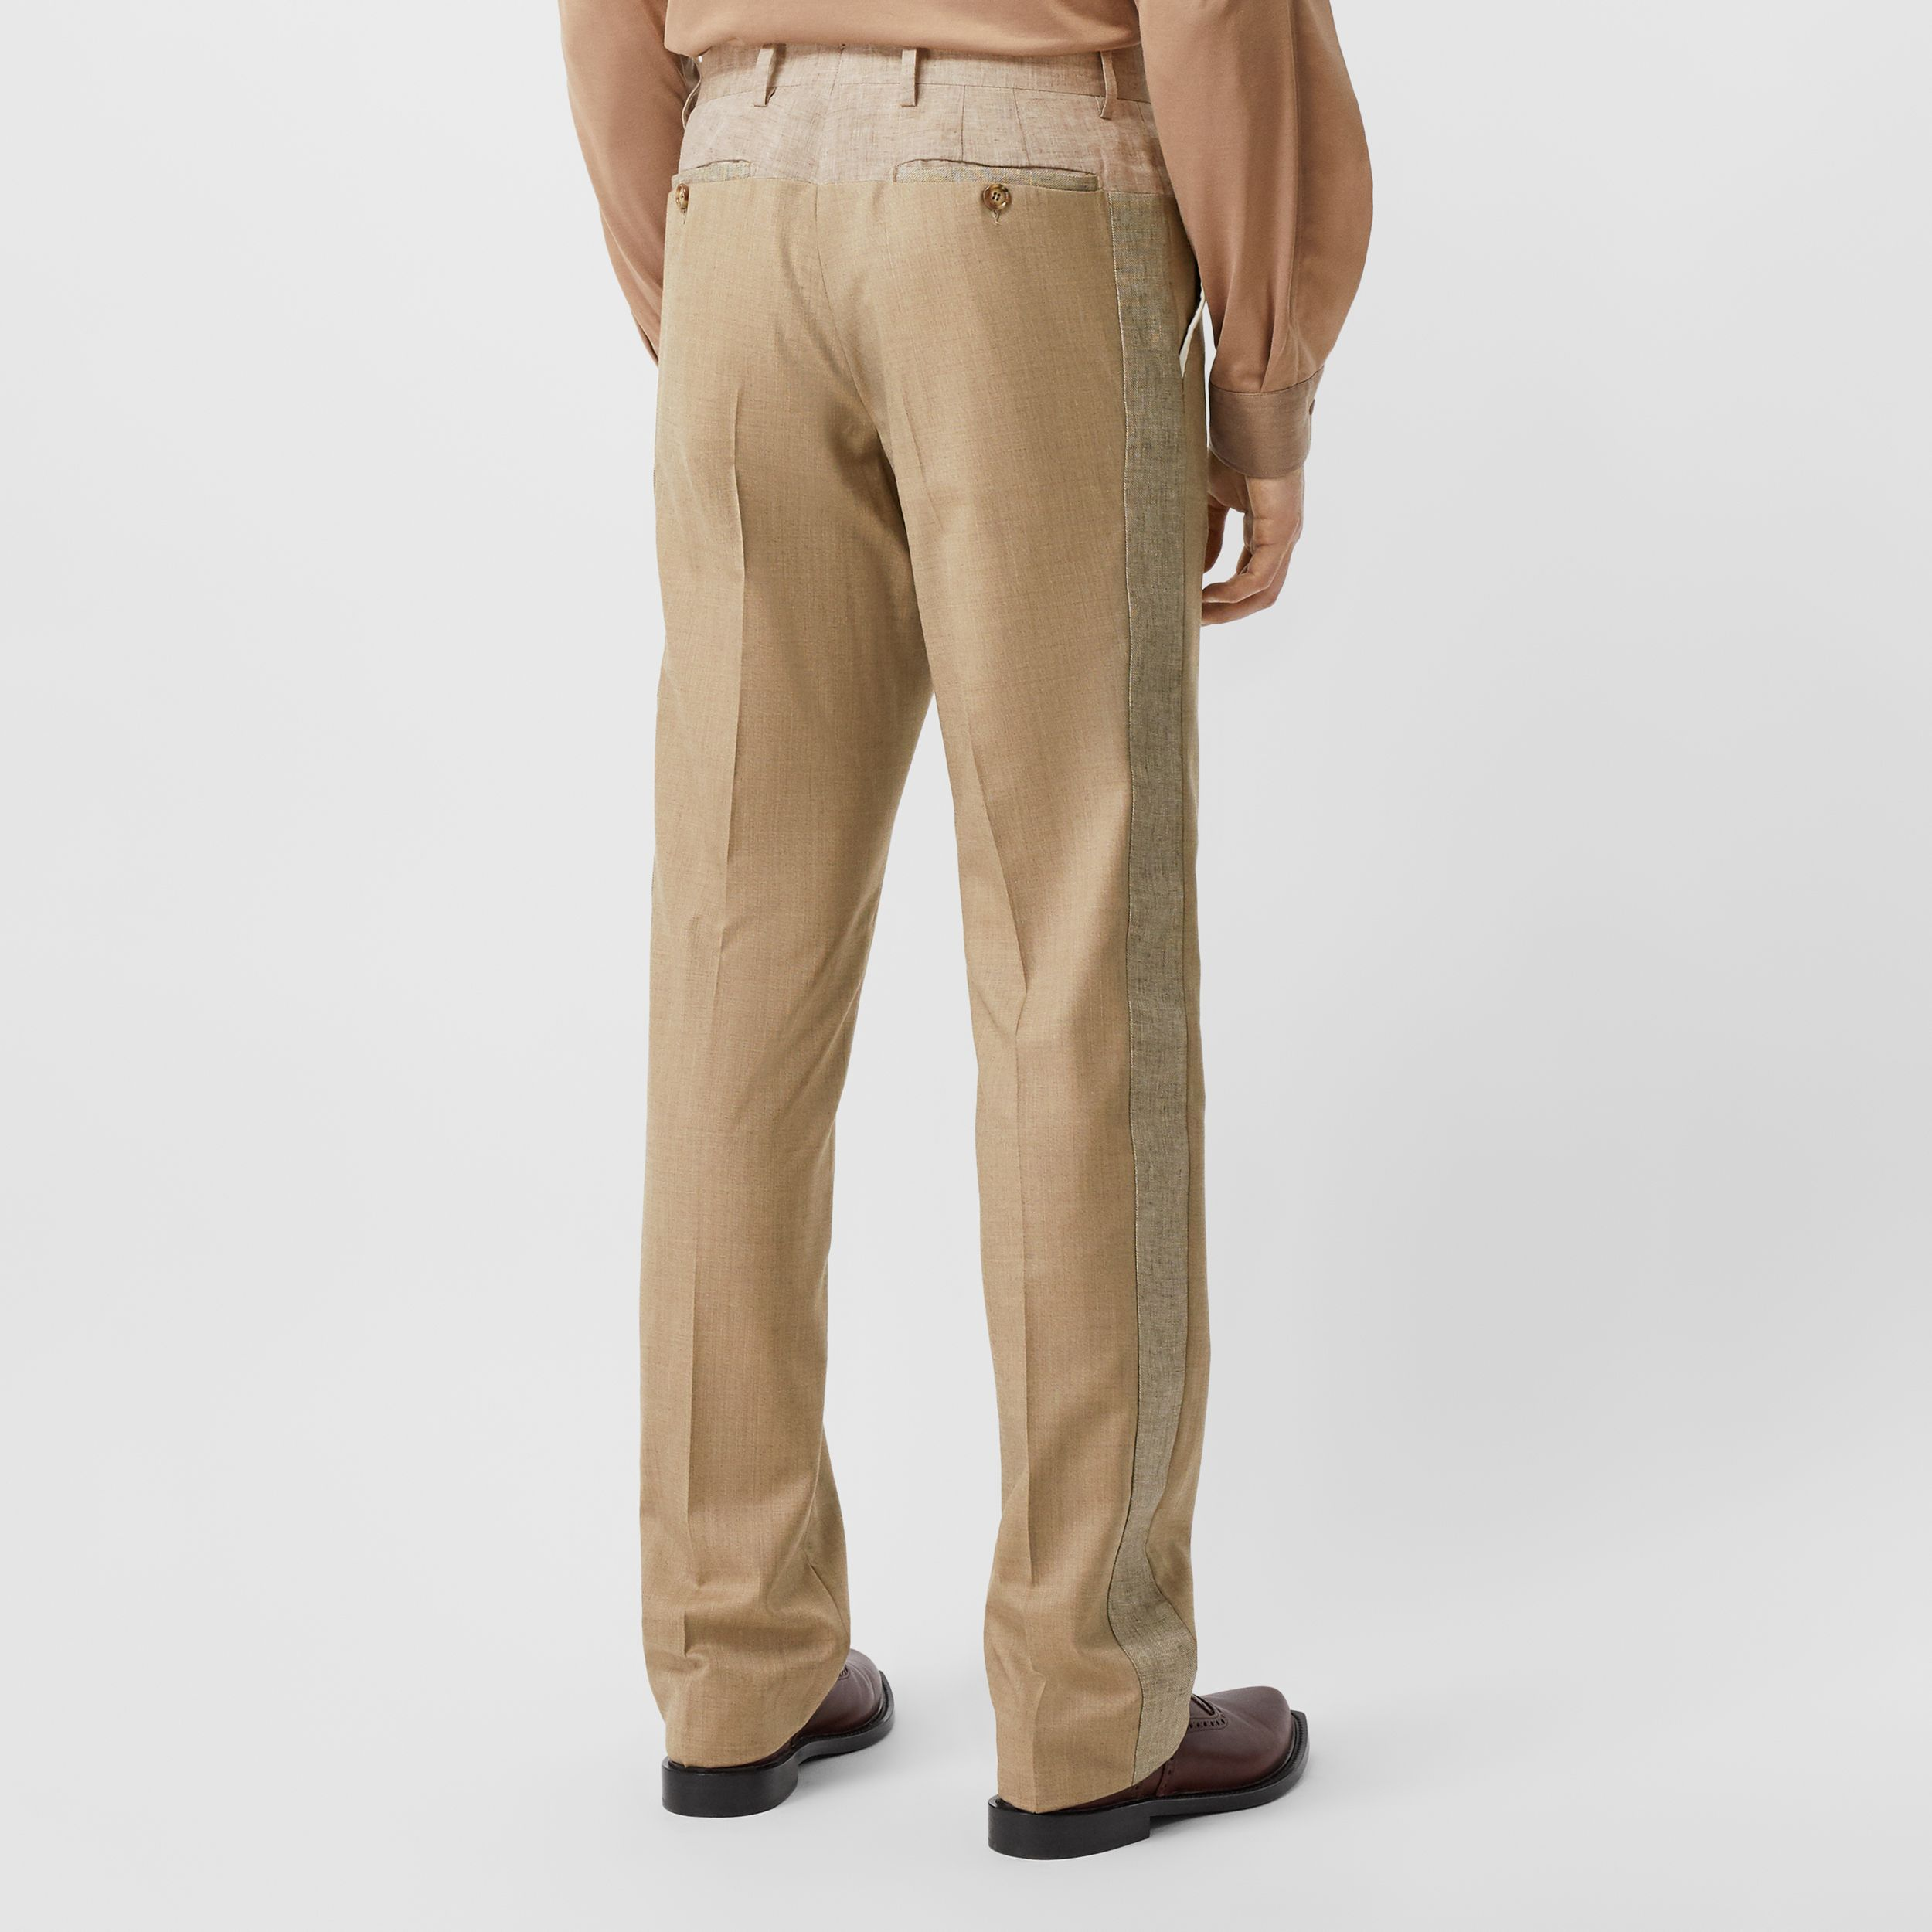 English Fit Wool Cashmere and Linen Tailored Trousers in Pecan Melange - Men | Burberry - 3